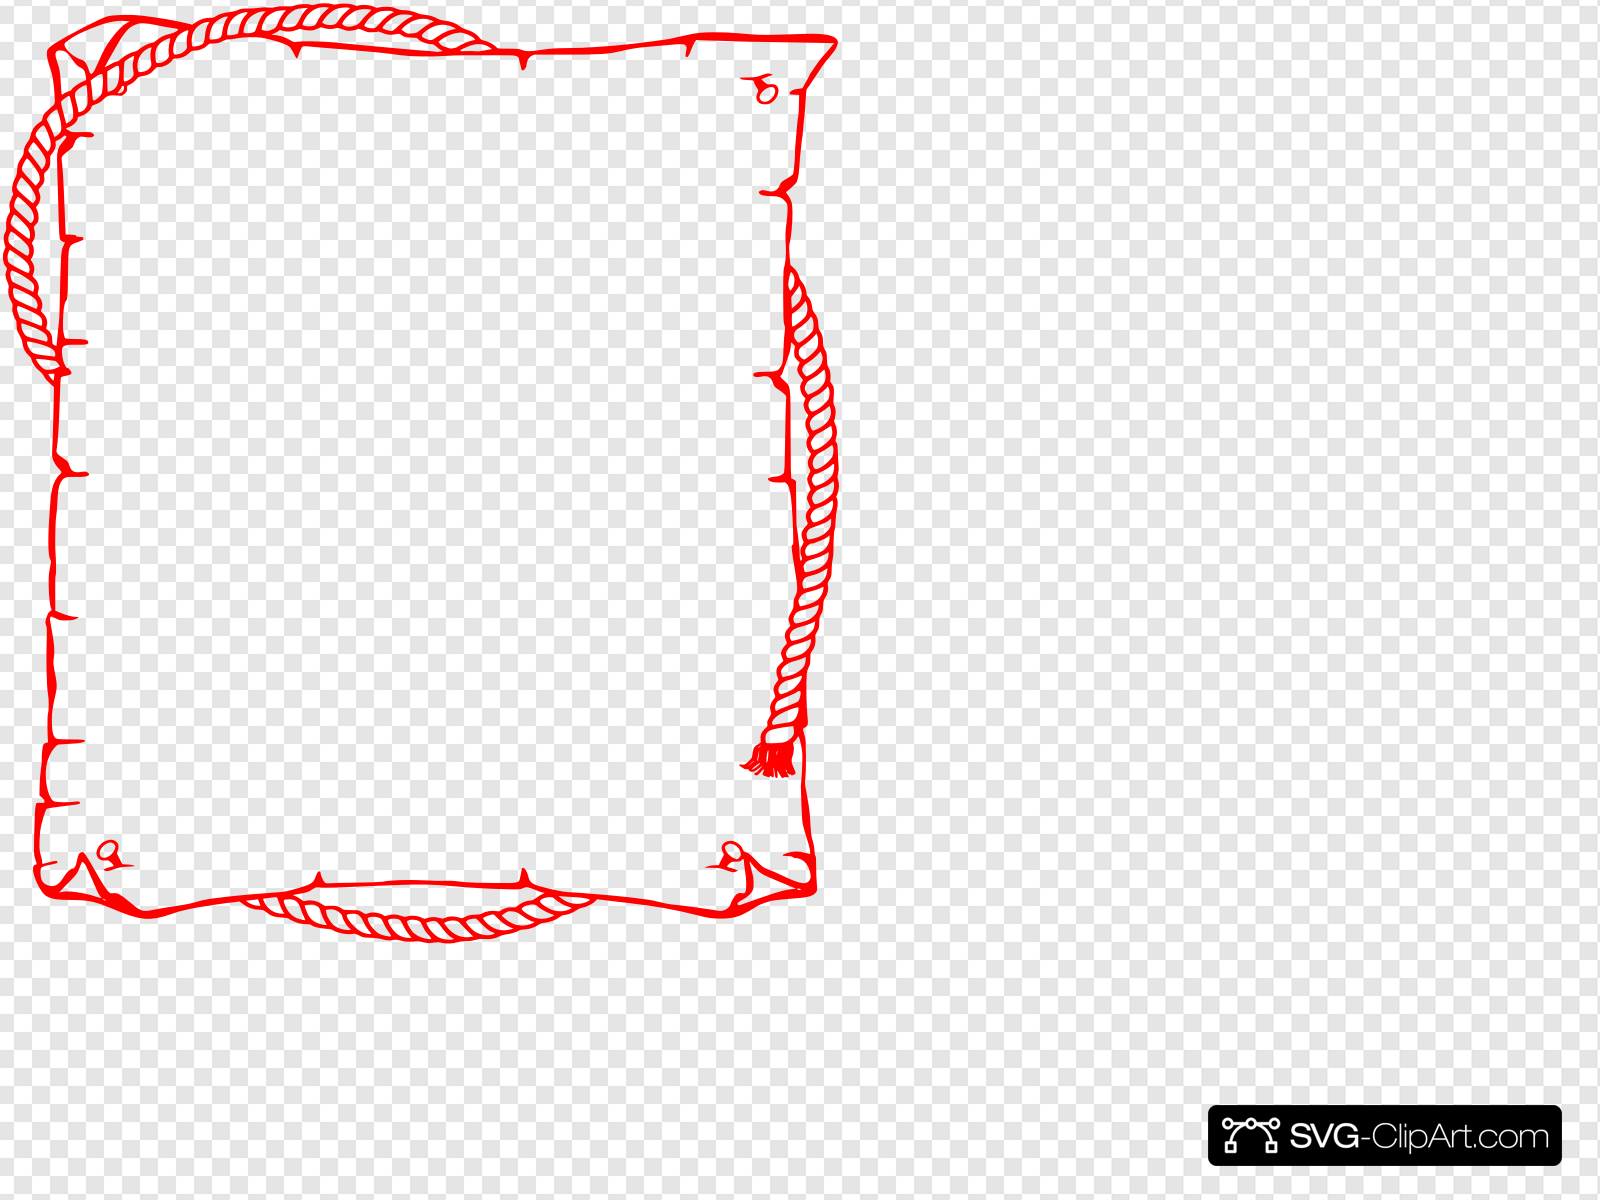 Cowboy Rope Border Clip art, Icon and SVG.